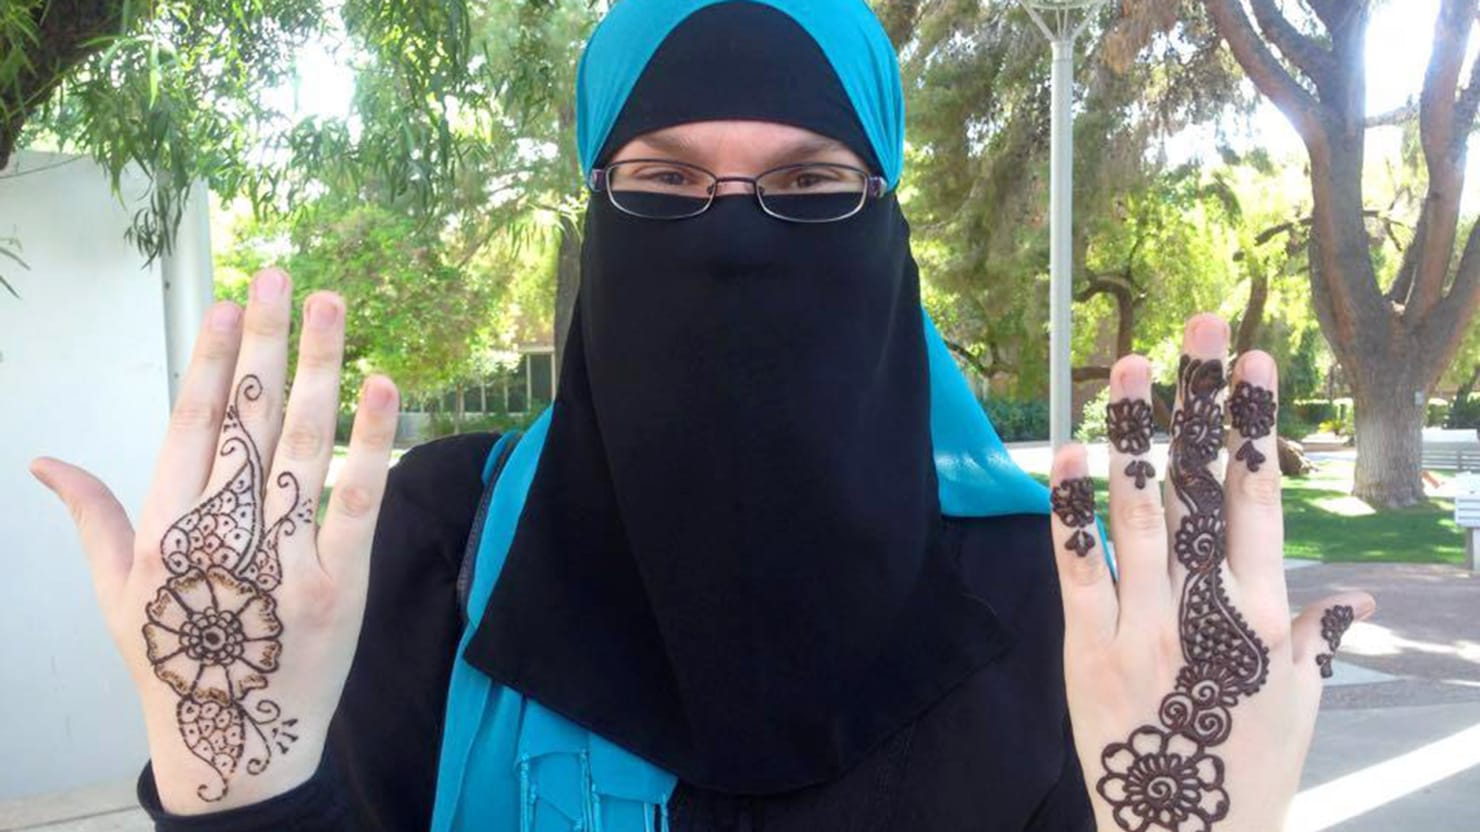 Mosque Banned Her for Being Trans